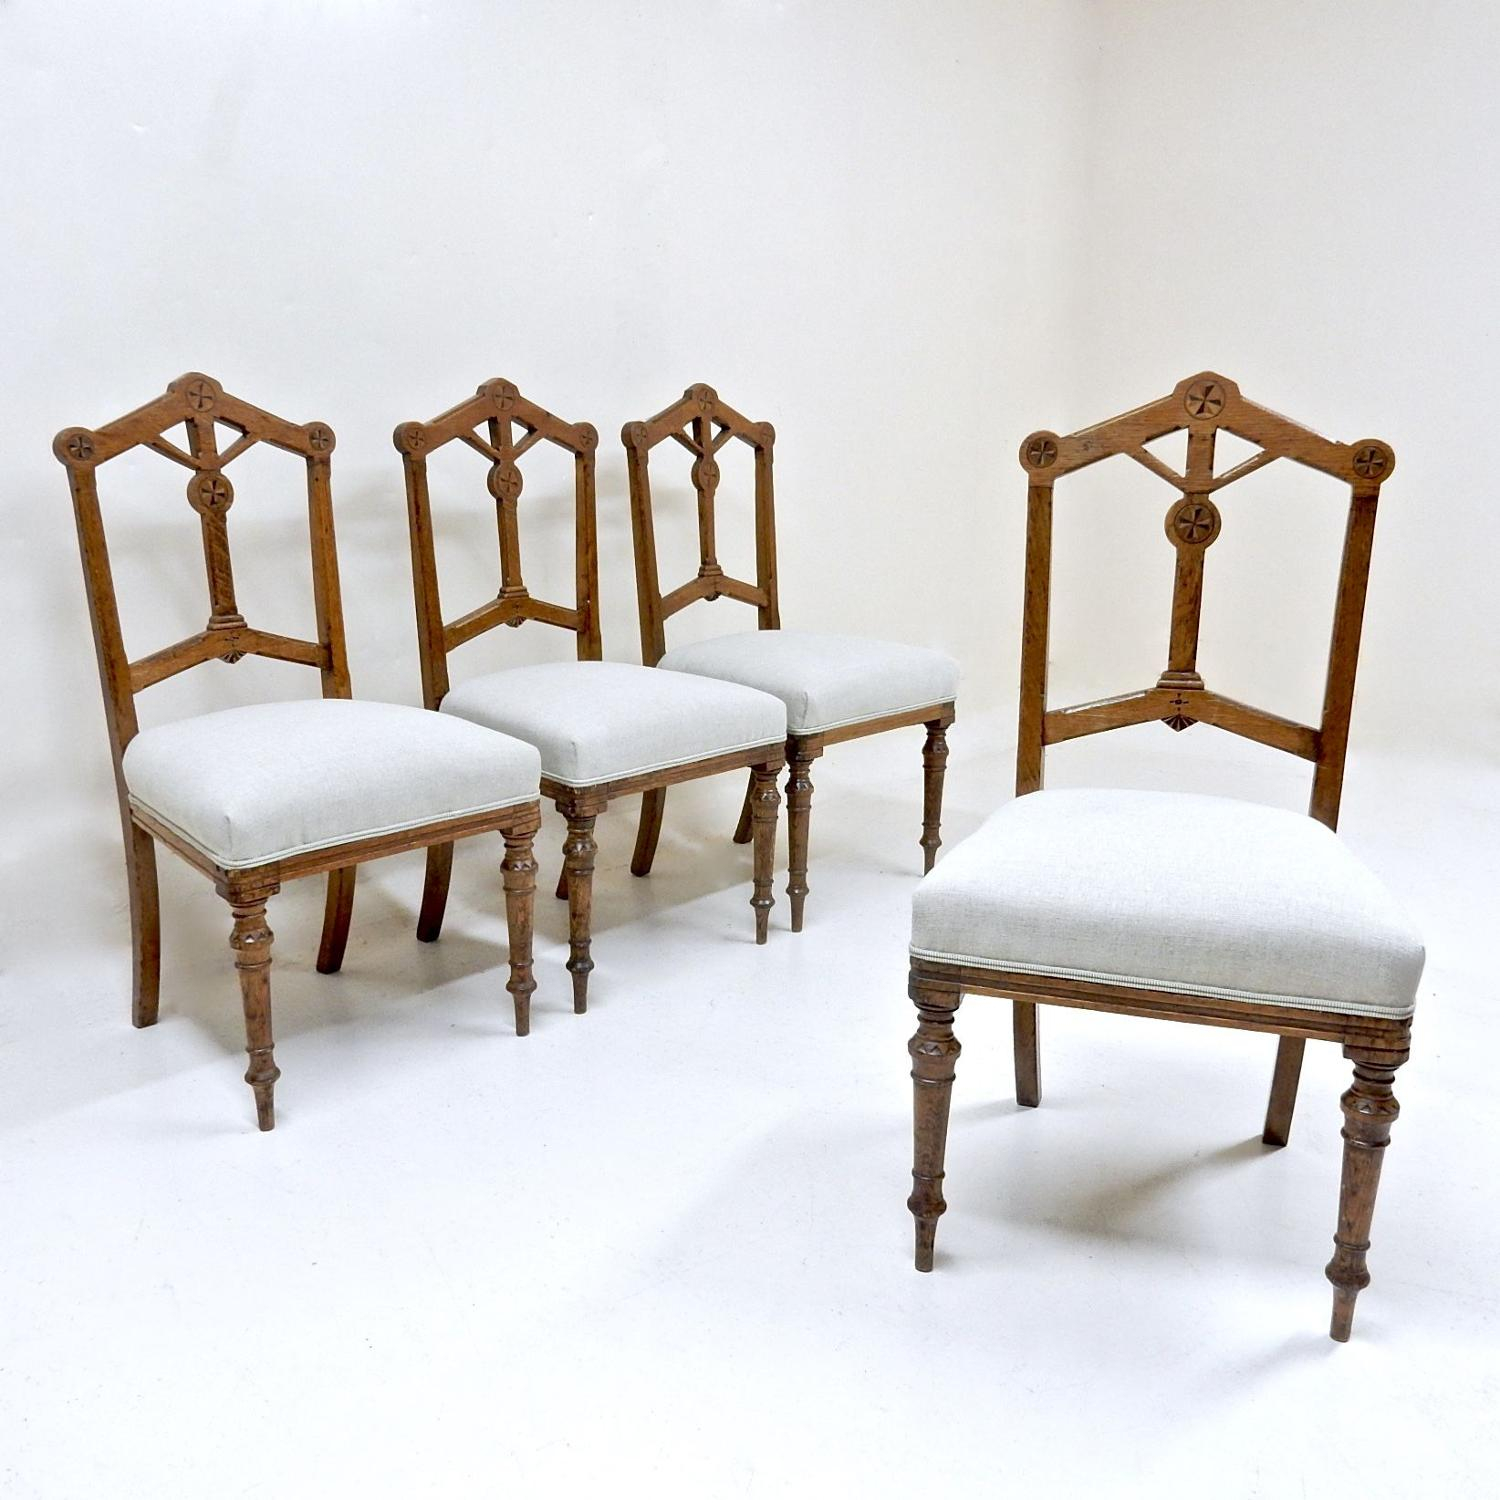 Gothic Revival Dining Chairs